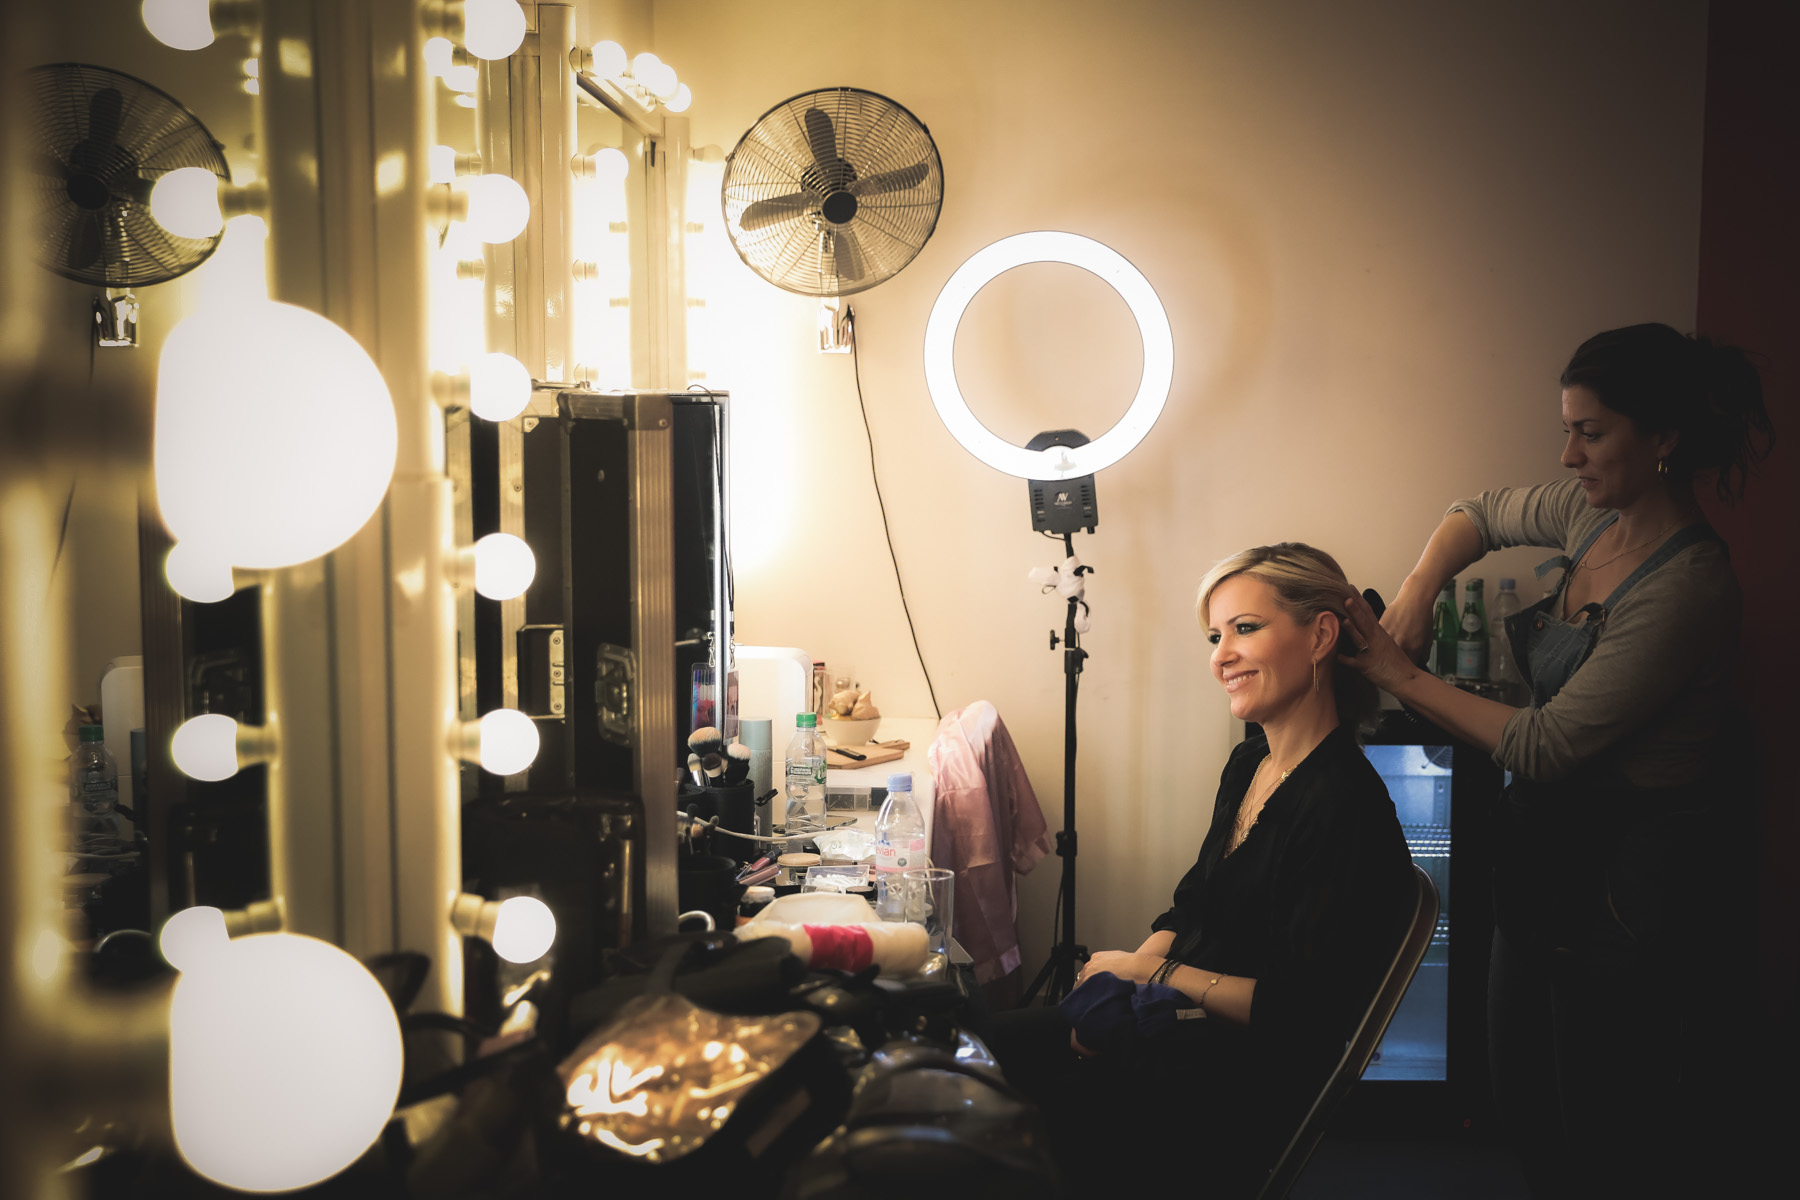 Dido backstage by Christie Goodwin